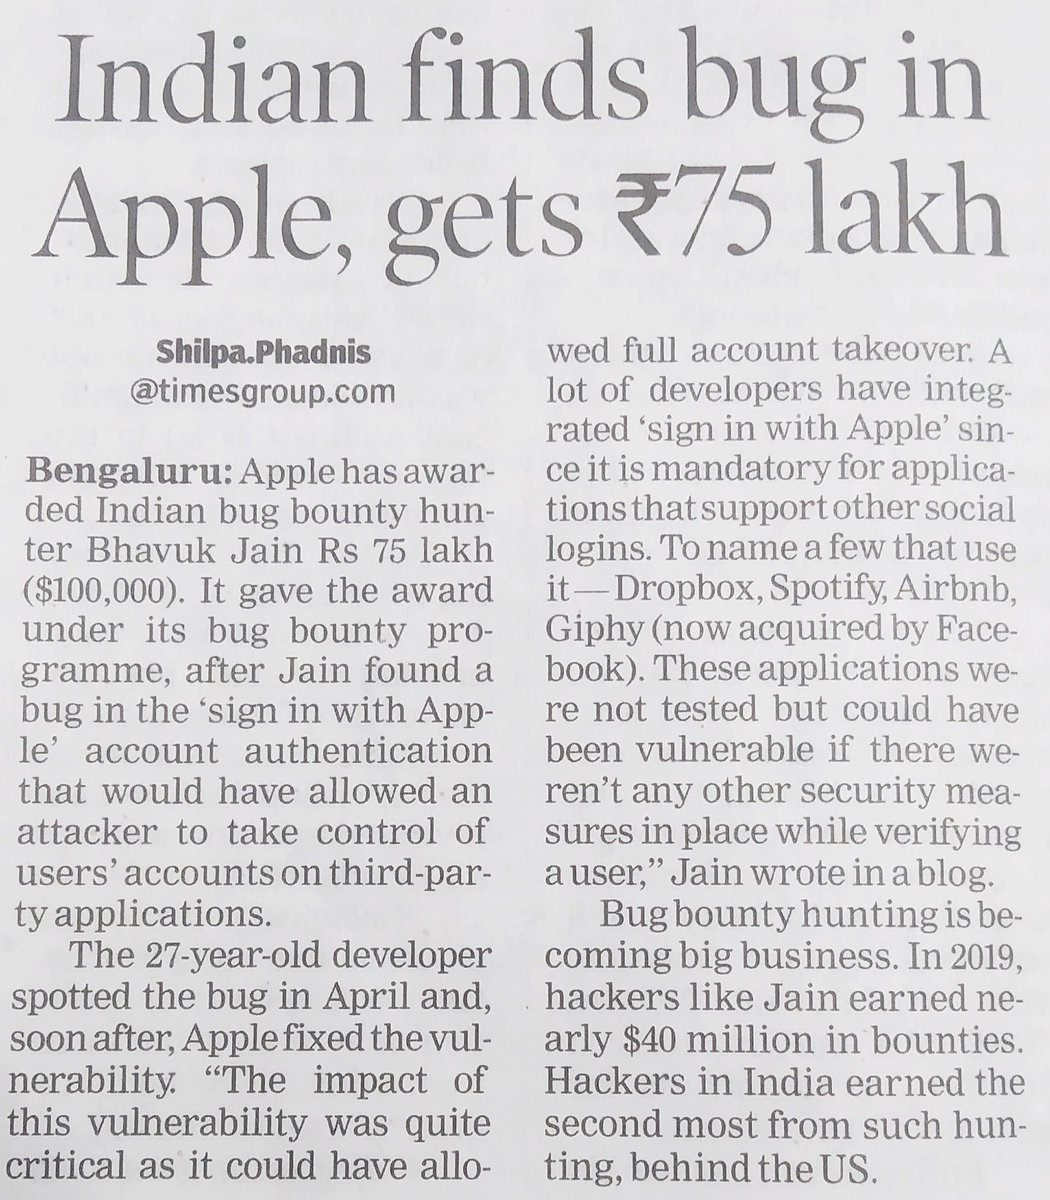 #Indian finds #bug in #Apple and gets ₹75 #lakh   #cybersecurity #hacking #security #technology #hacker #infosec #tech #ethicalhacking #programming #cyber #socnaukri #cybercrime #malware #python #privacy #it #iot #cyberattack #coding #dataprotection #hack #ethicalhacker pic.twitter.com/iuPGRvtxHJ